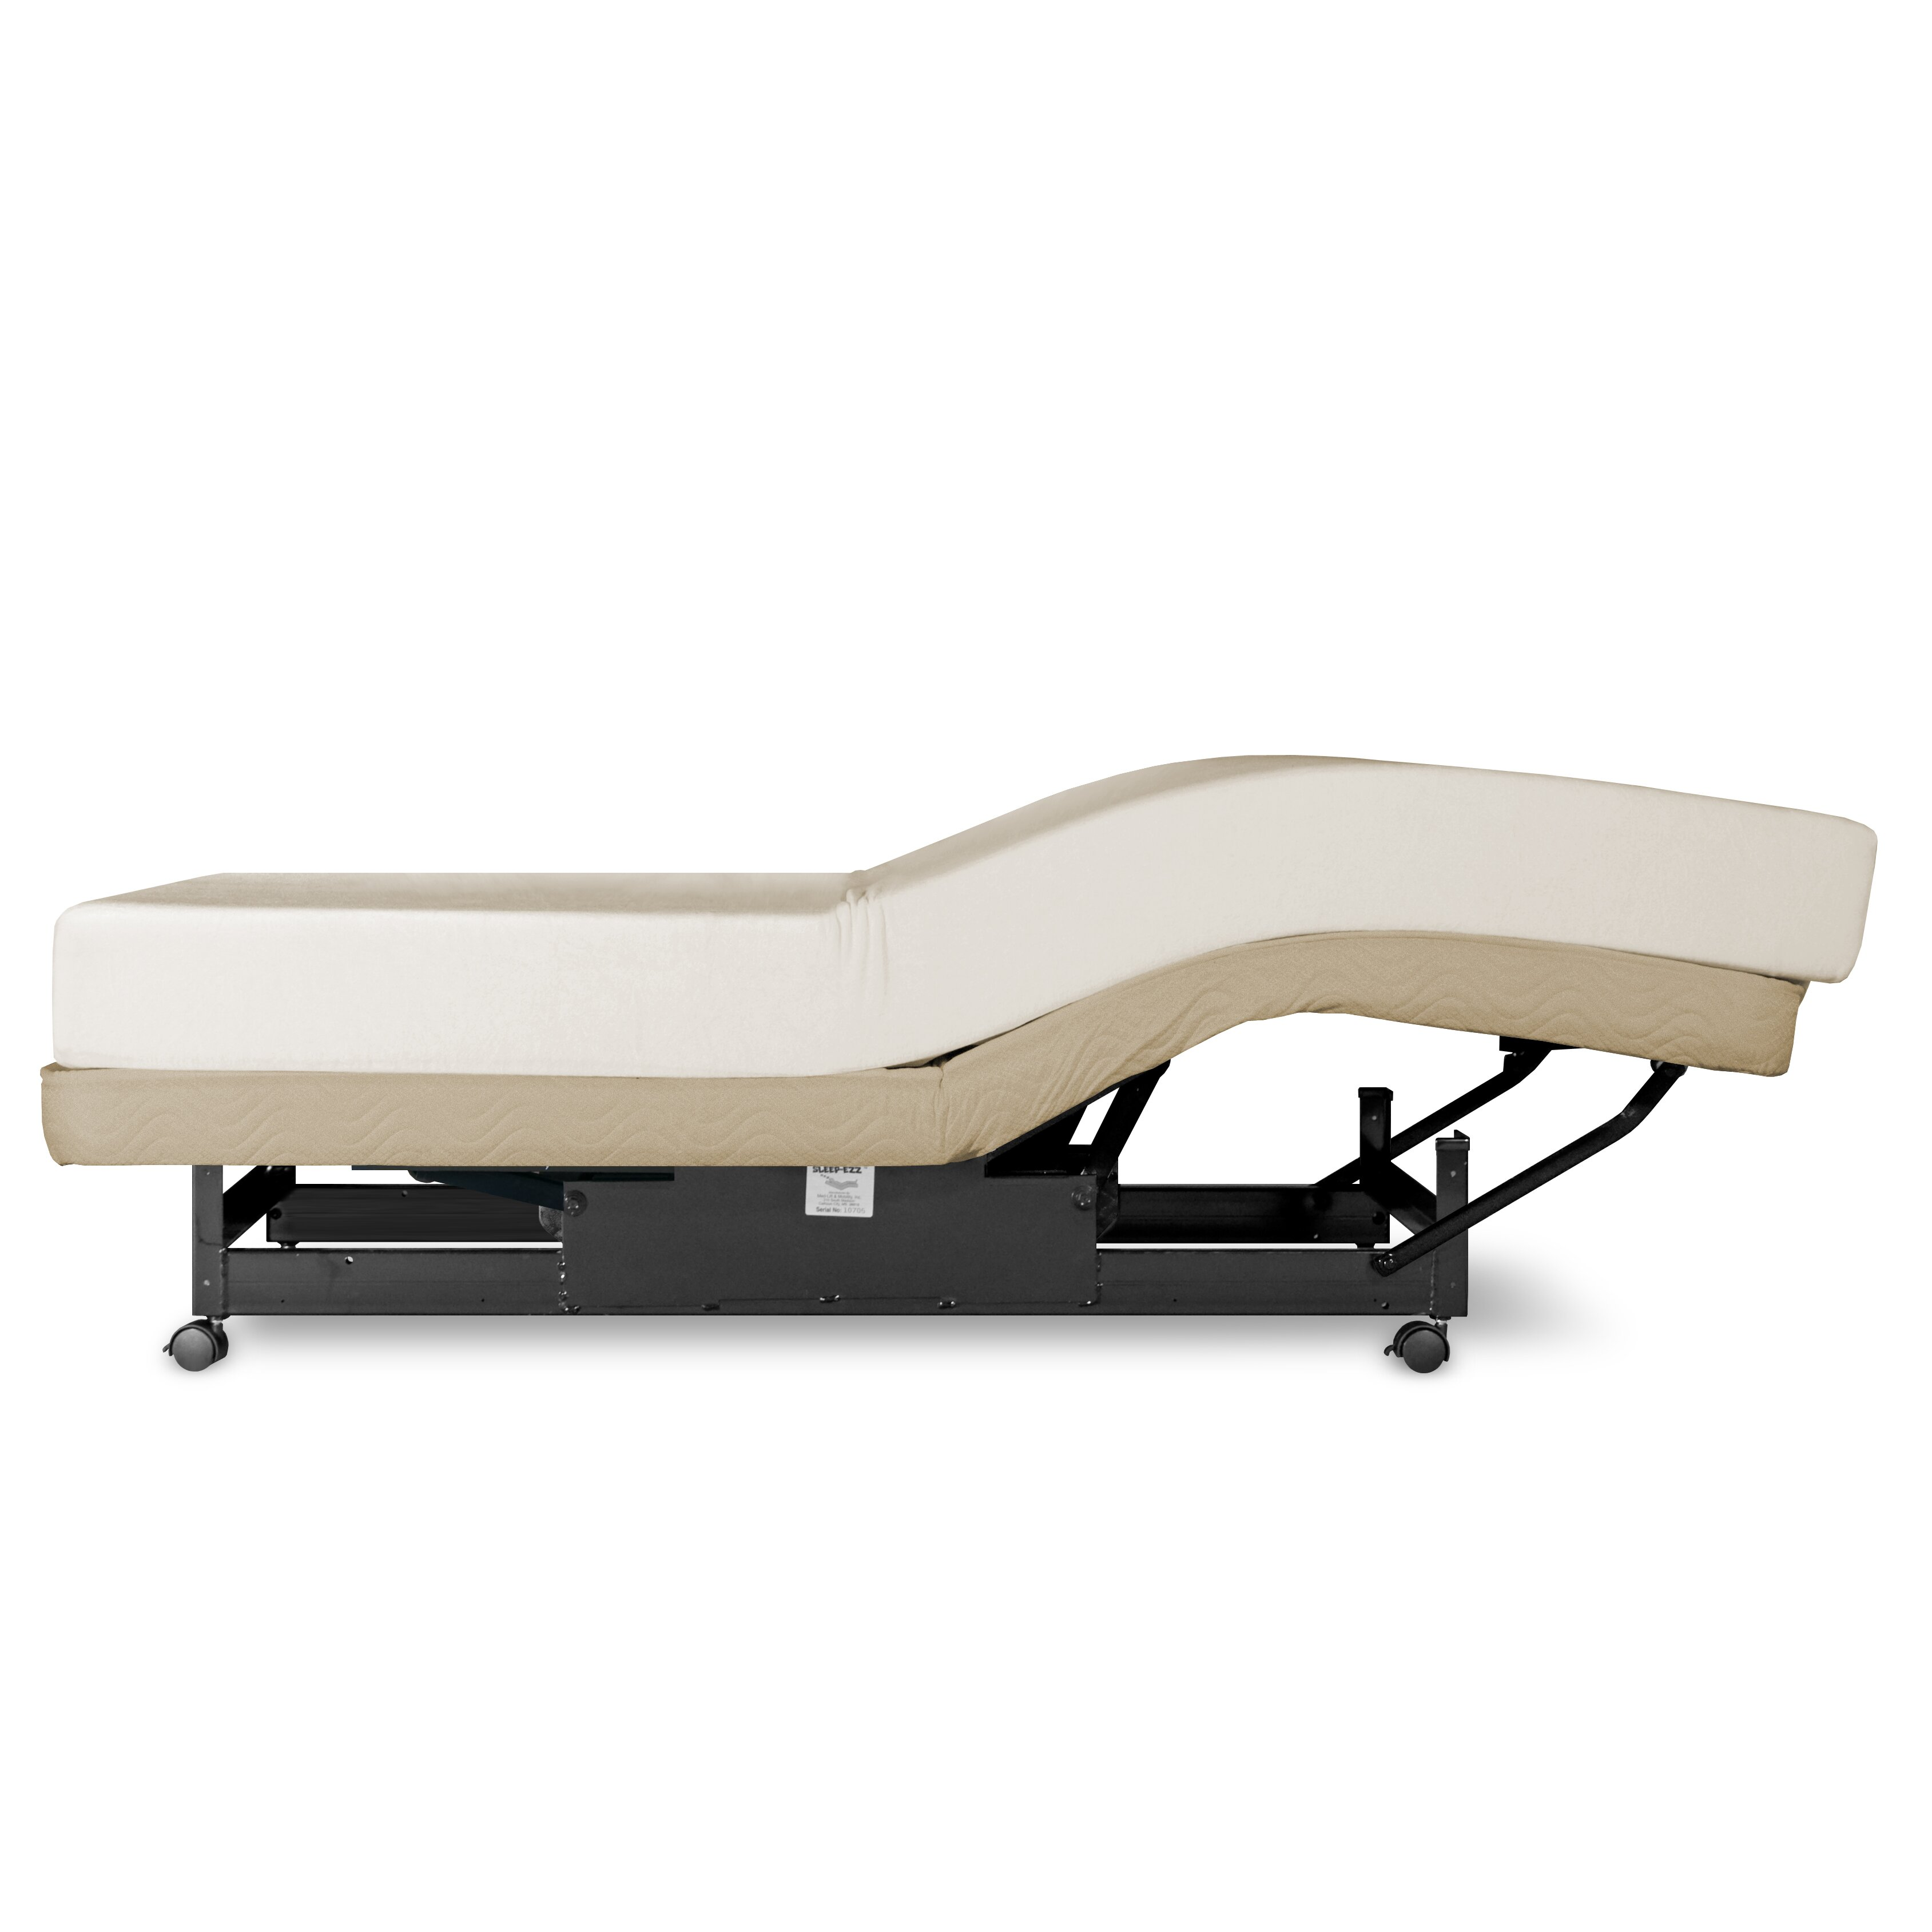 med lift economy series adjustable bed